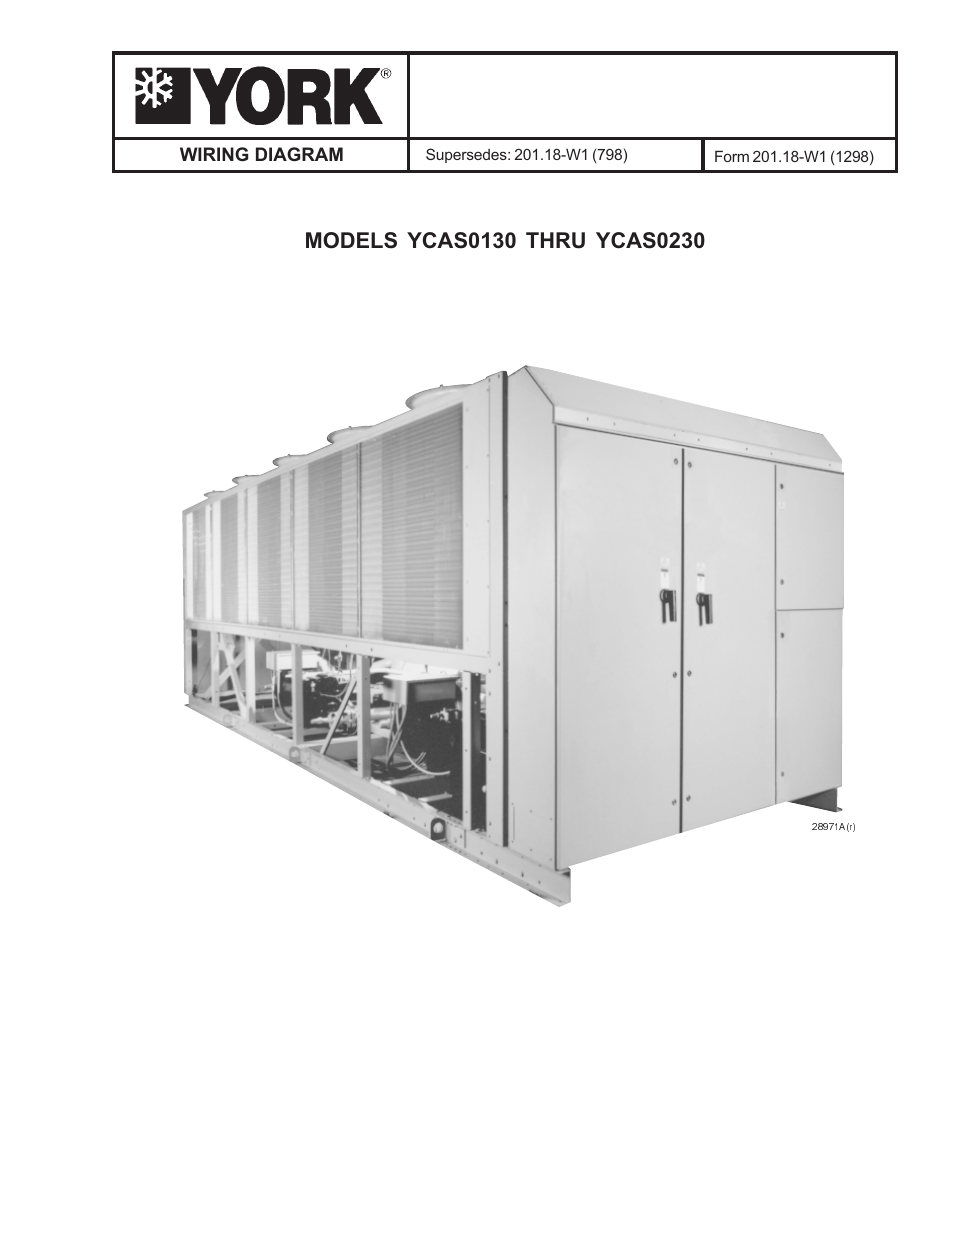 York Millennium Ycas0230 User Manual 28 Pages Also For Shipping Container Wiring Diagram Ycas0130